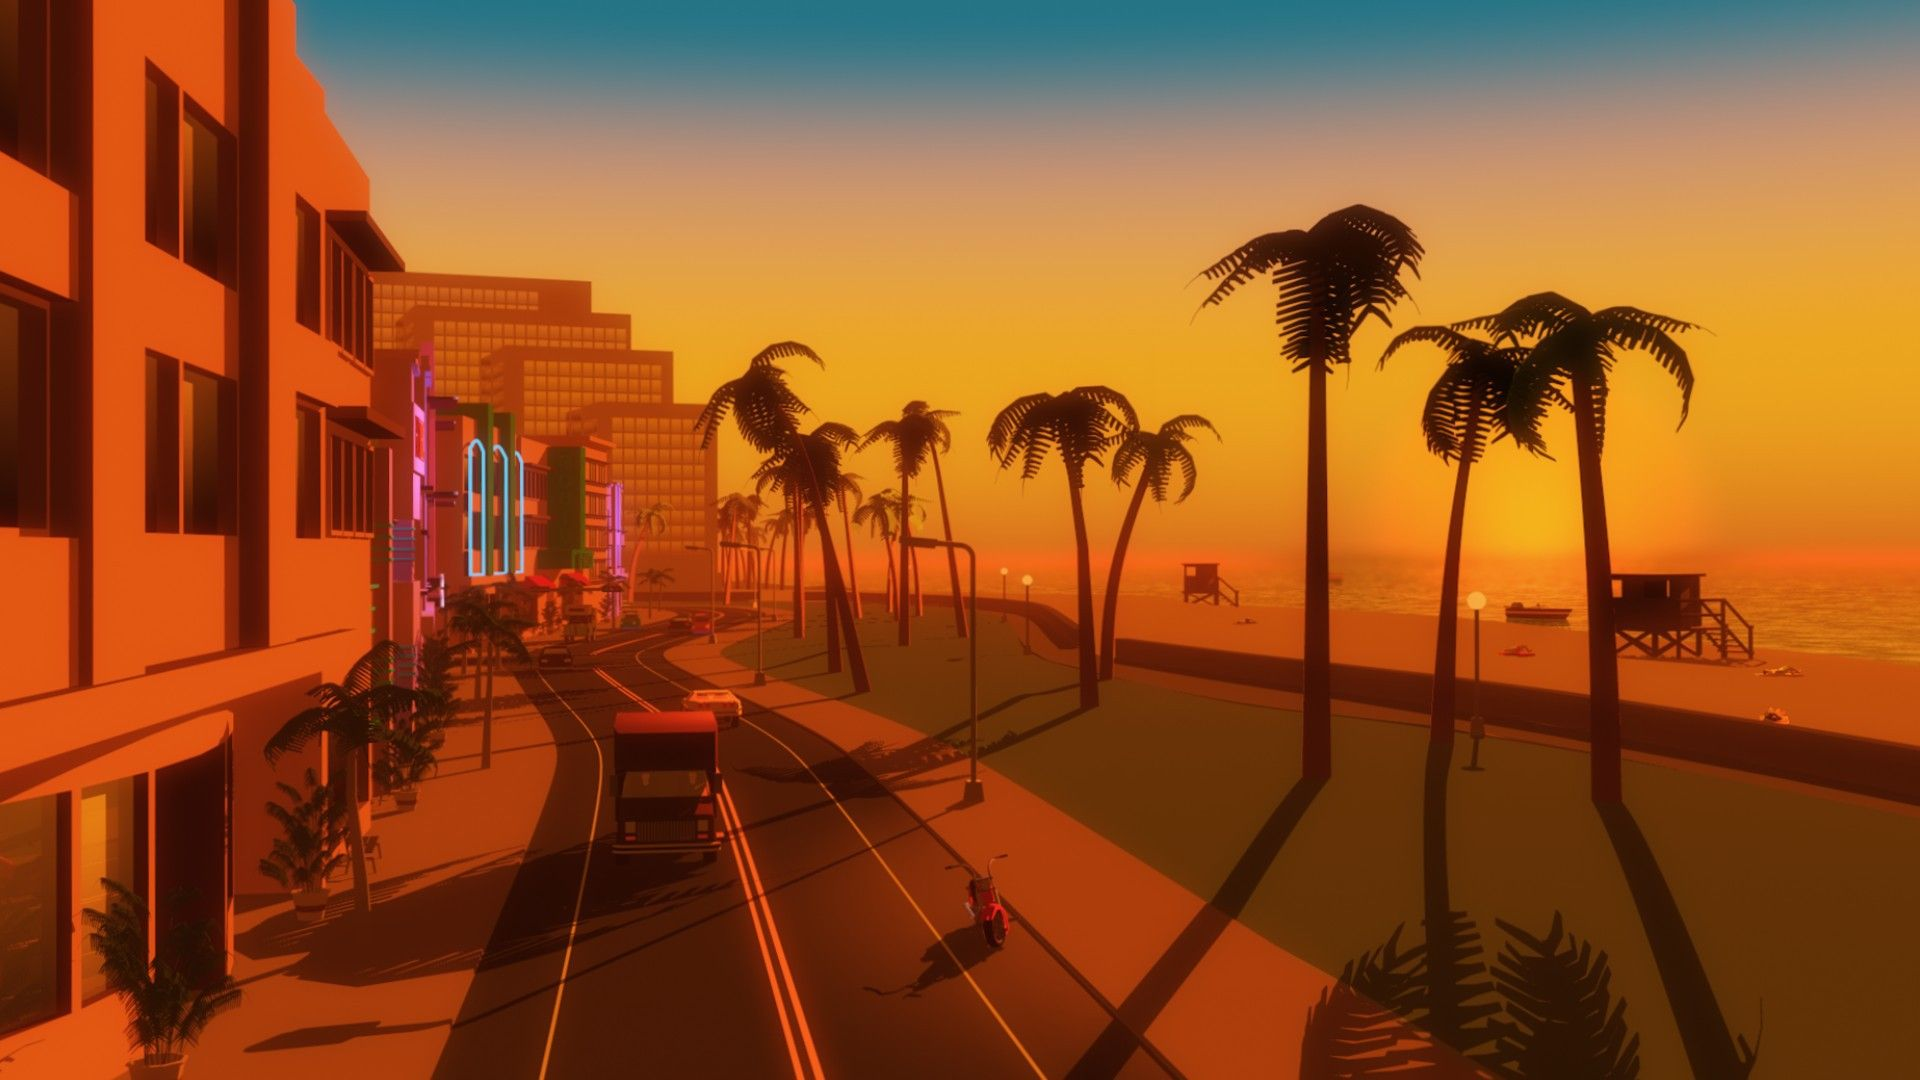 Video Games Palm Trees Gta Vice City Beach Wallpaper City Wallpaper Beach Wallpaper City Aesthetic